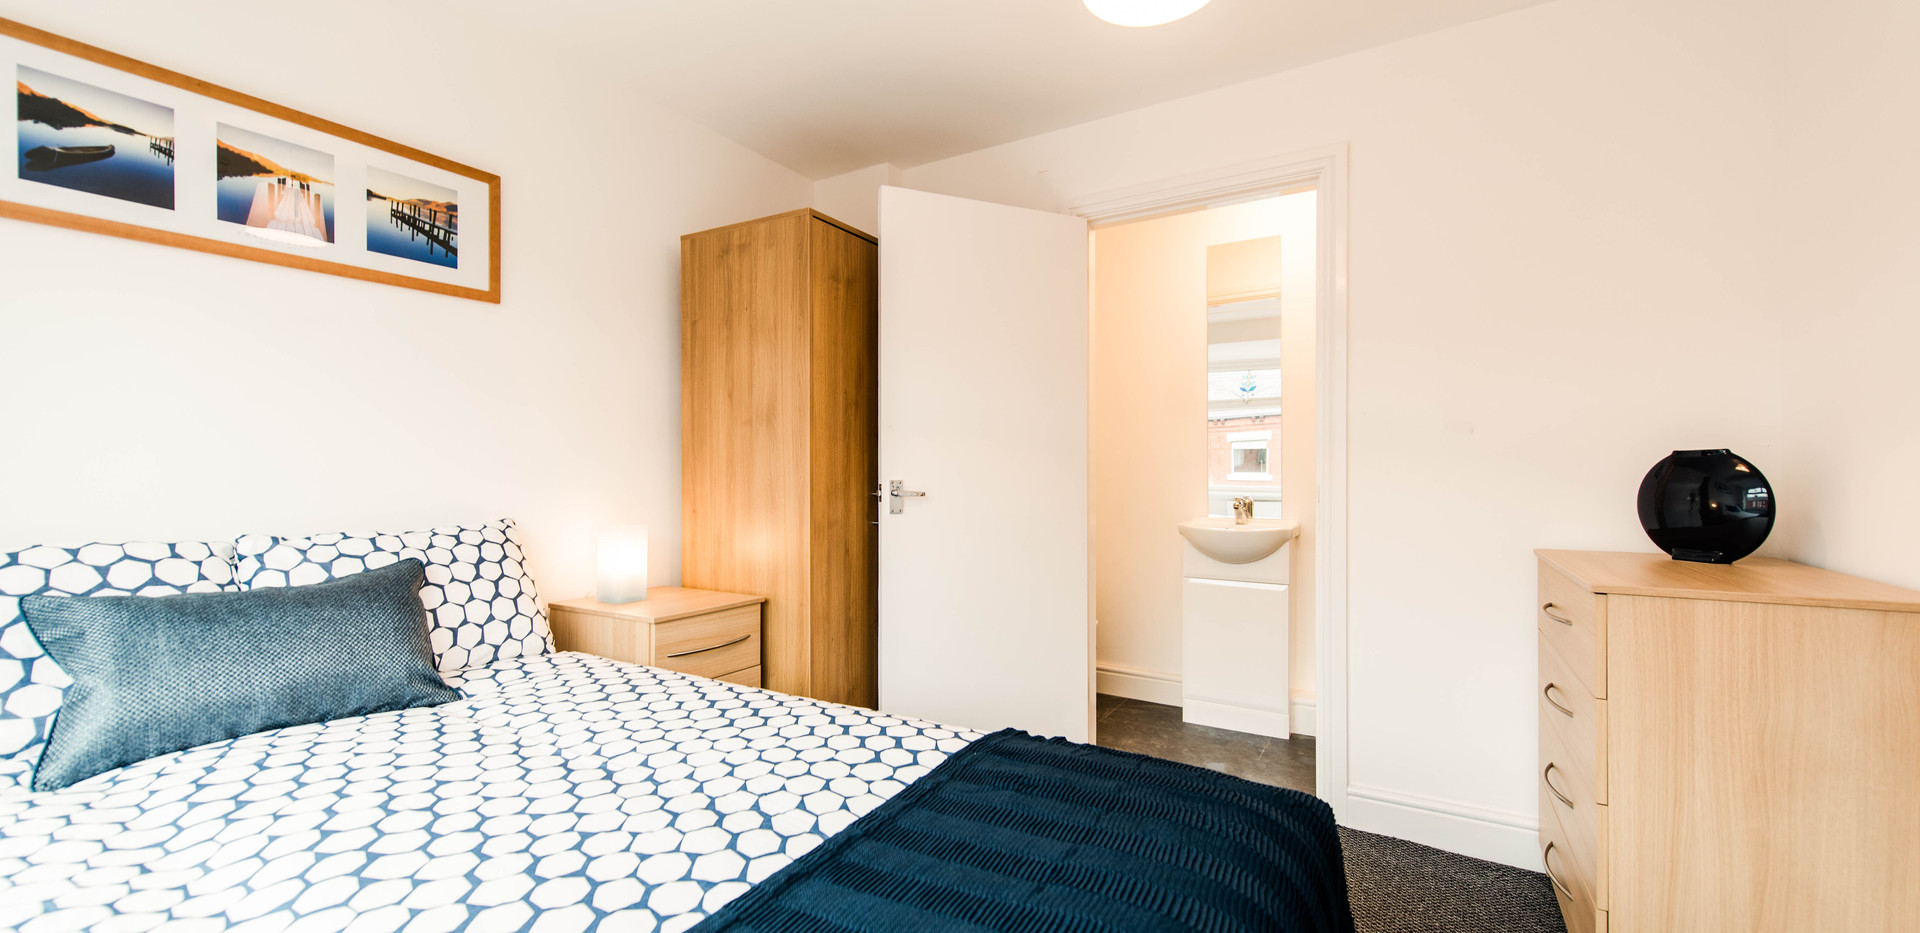 Room 3 at Mather Street